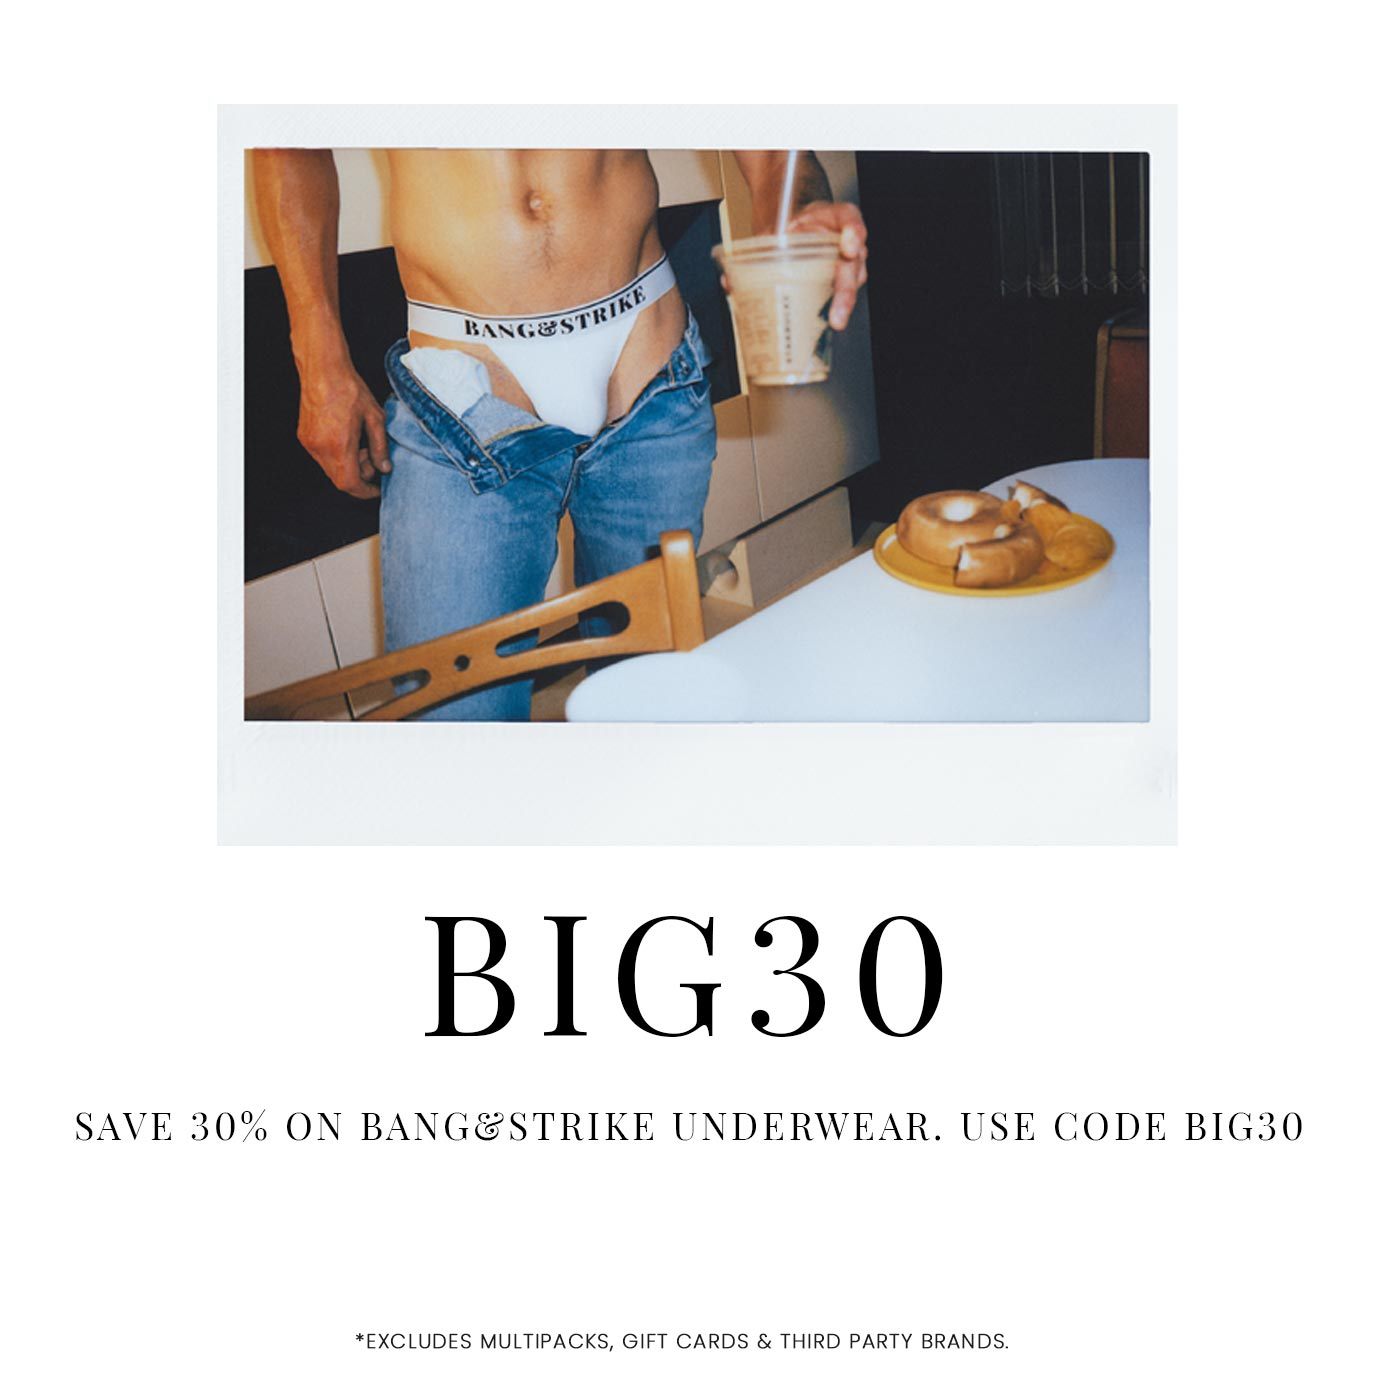 BIG30 30% OFF BANG&STRIKE UNDERWEAR